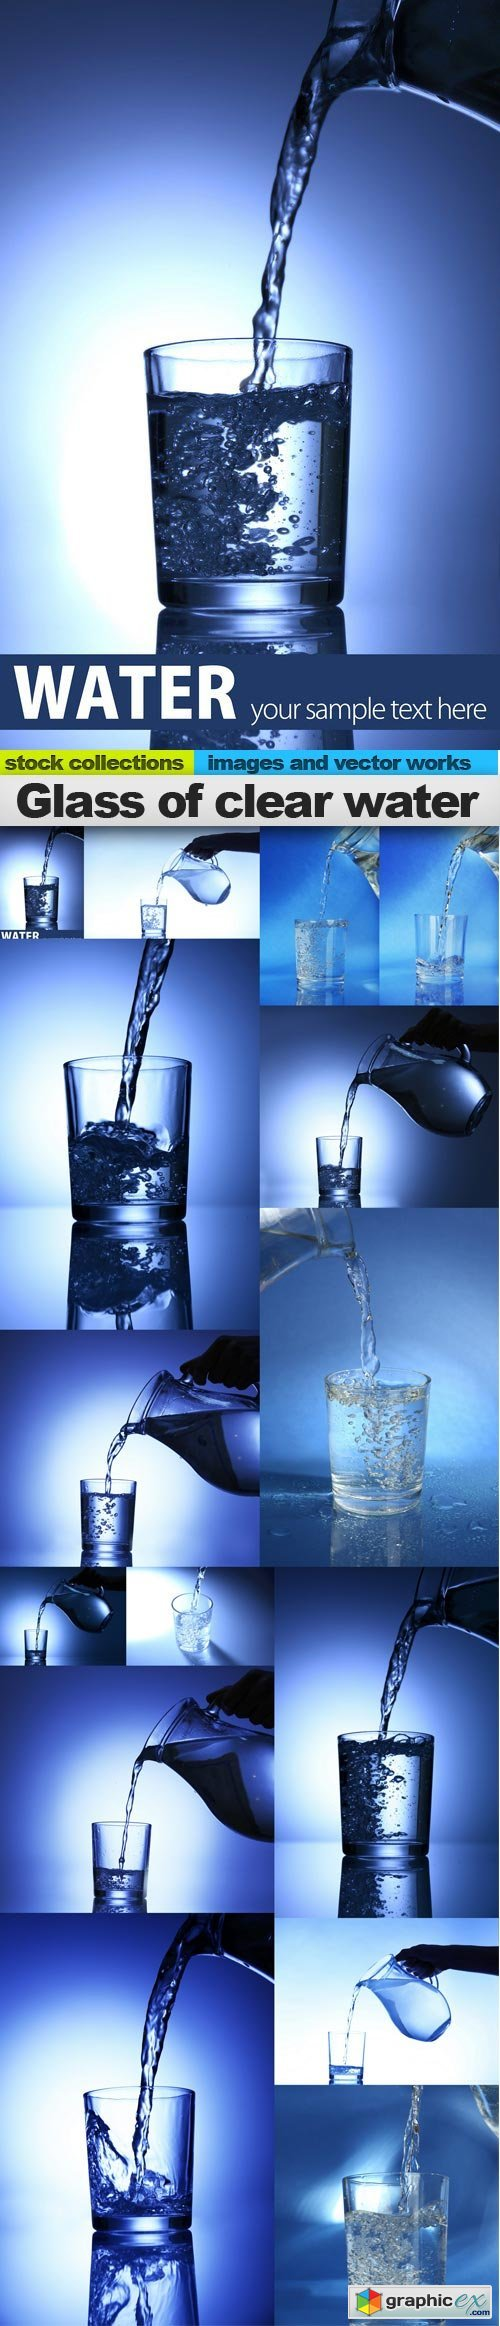 Glass of clear water, 15 x UHQ JPEG